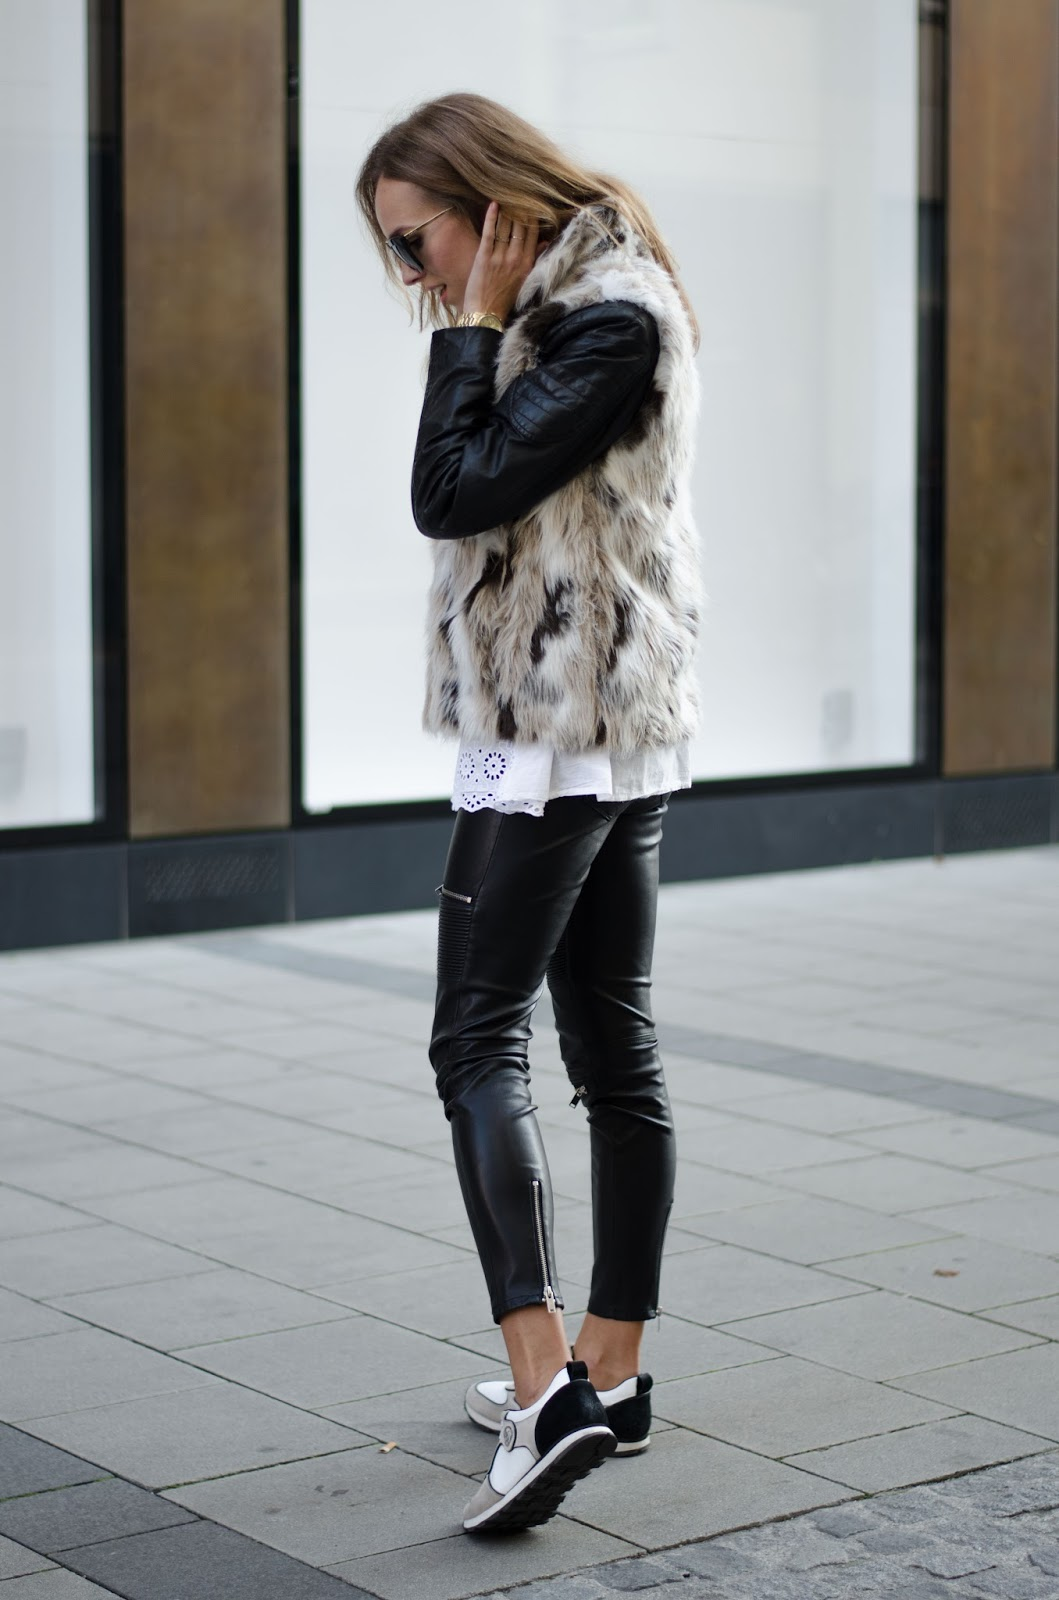 kristjaana mere zara faux fur vest leather pants sneakers black white causal fall outfit